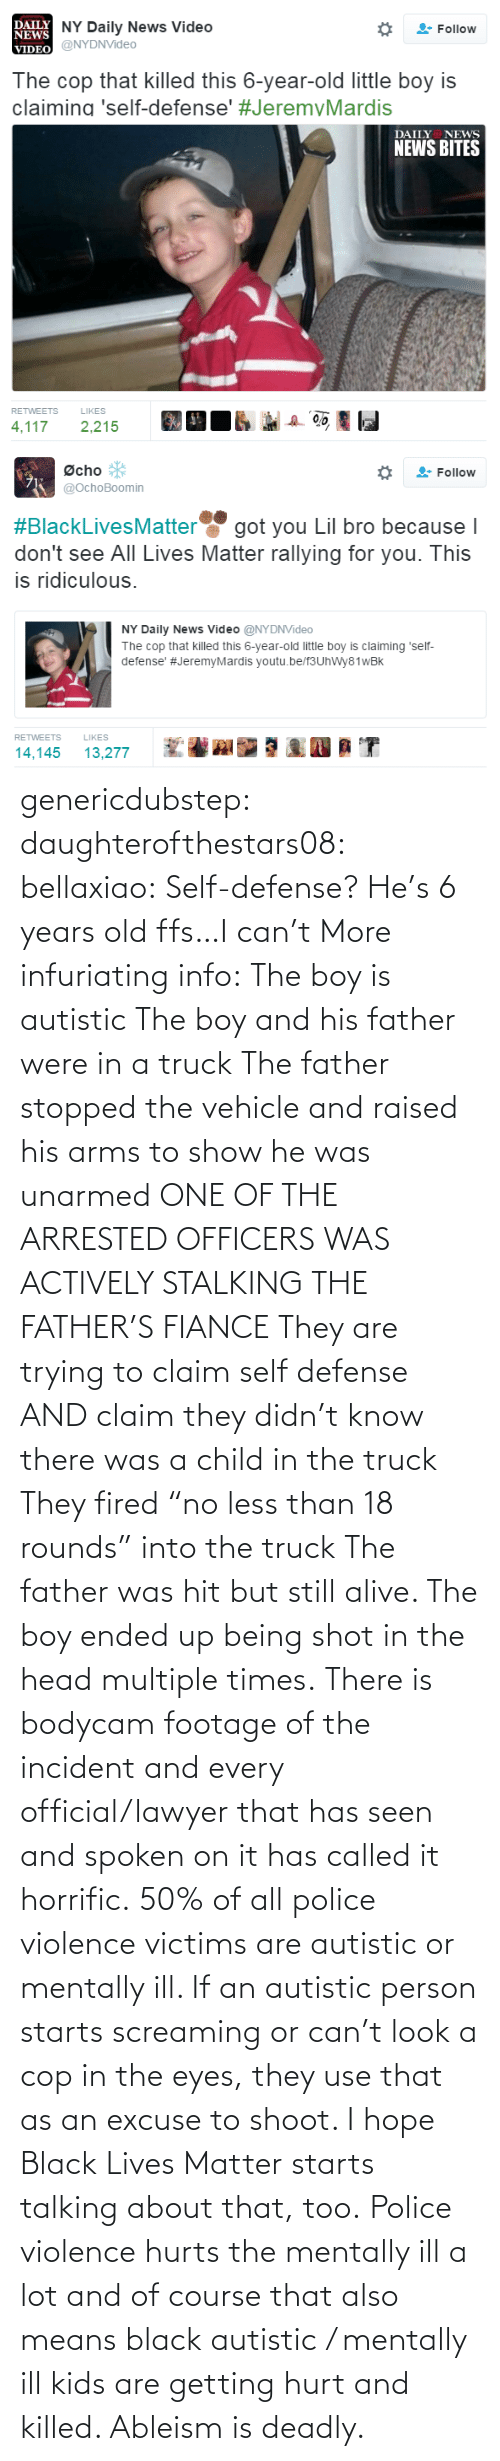 "ill: genericdubstep: daughterofthestars08:  bellaxiao:  Self-defense? He's 6 years old ffs…I can't  More infuriating info: The boy is autistic The boy and his father were in a truck The father stopped the vehicle and raised his arms to show he was unarmed ONE OF THE ARRESTED OFFICERS WAS ACTIVELY STALKING THE FATHER'S FIANCE They are trying to claim self defense AND claim they didn't know there was a child in the truck They fired ""no less than 18 rounds"" into the truck The father was hit but still alive. The boy ended up being shot in the head multiple times. There is bodycam footage of the incident and every official/lawyer that has seen and spoken on it has called it horrific.  50% of all police violence victims are autistic or mentally ill. If an autistic person starts screaming or can't look a cop in the eyes, they use that as an excuse to shoot. I hope Black Lives Matter starts talking about that, too. Police violence hurts the mentally ill a lot and of course that also means black autistic / mentally ill kids are getting hurt and killed. Ableism is deadly."